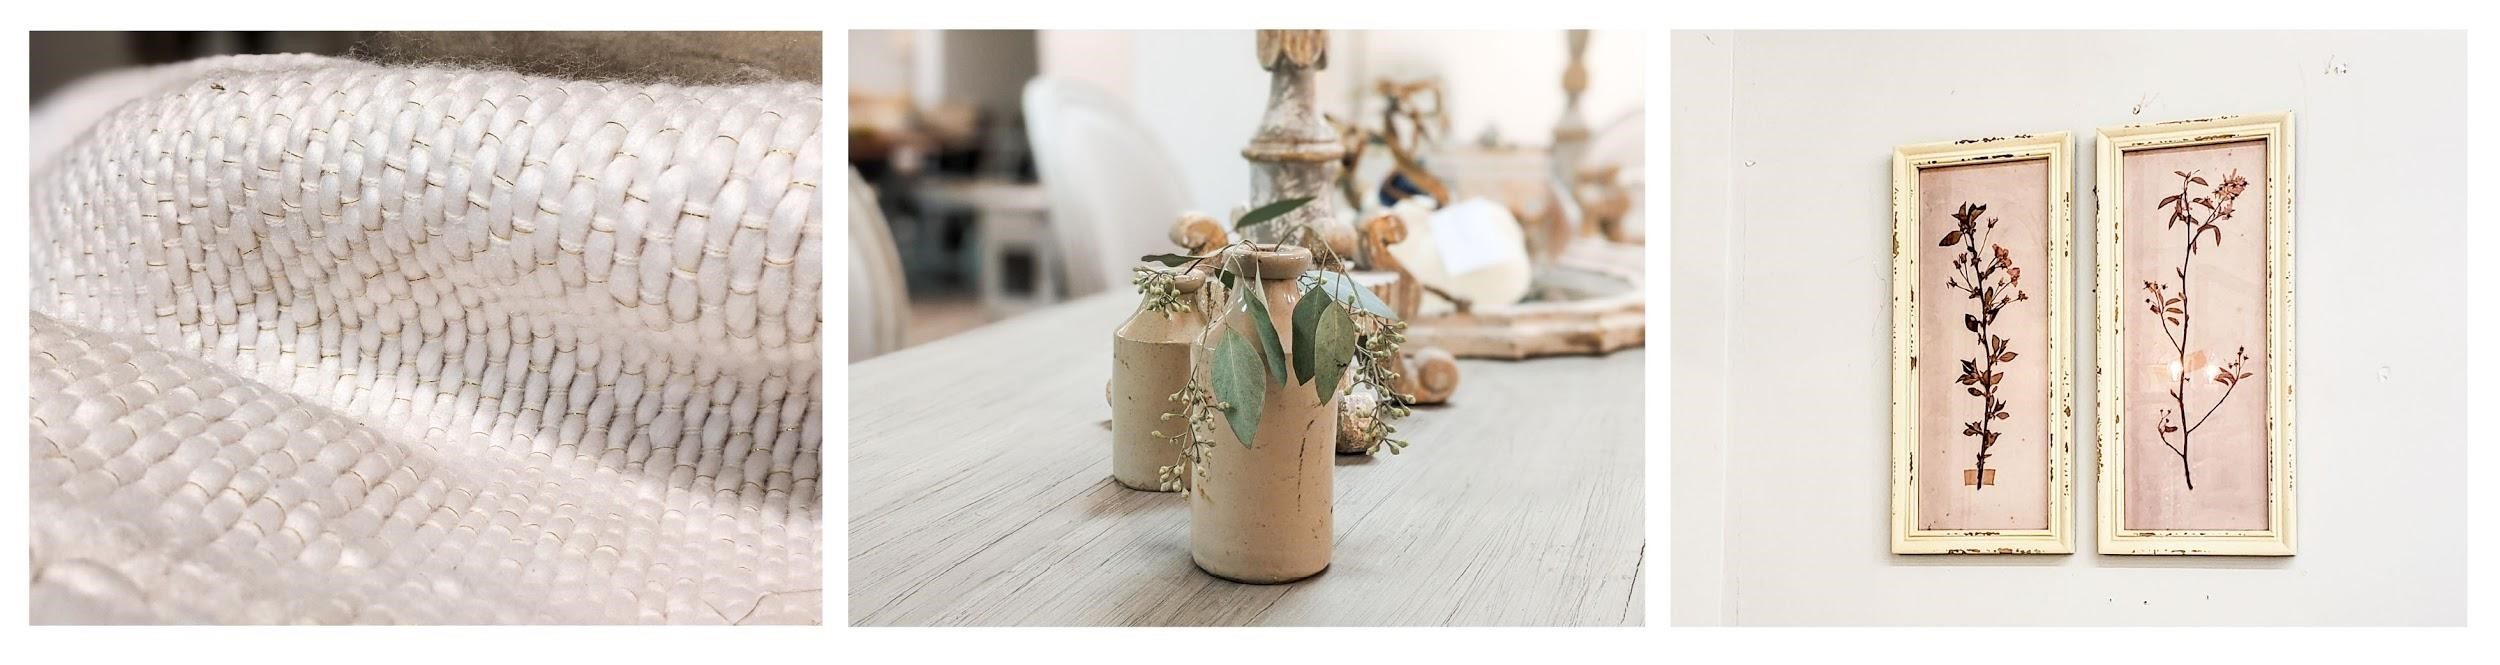 A collage of French country cottage style home decor including cozy white throw blankets, dried eucalyptus in ceramic vases, and pressed leaves flower artwork called herbiers.